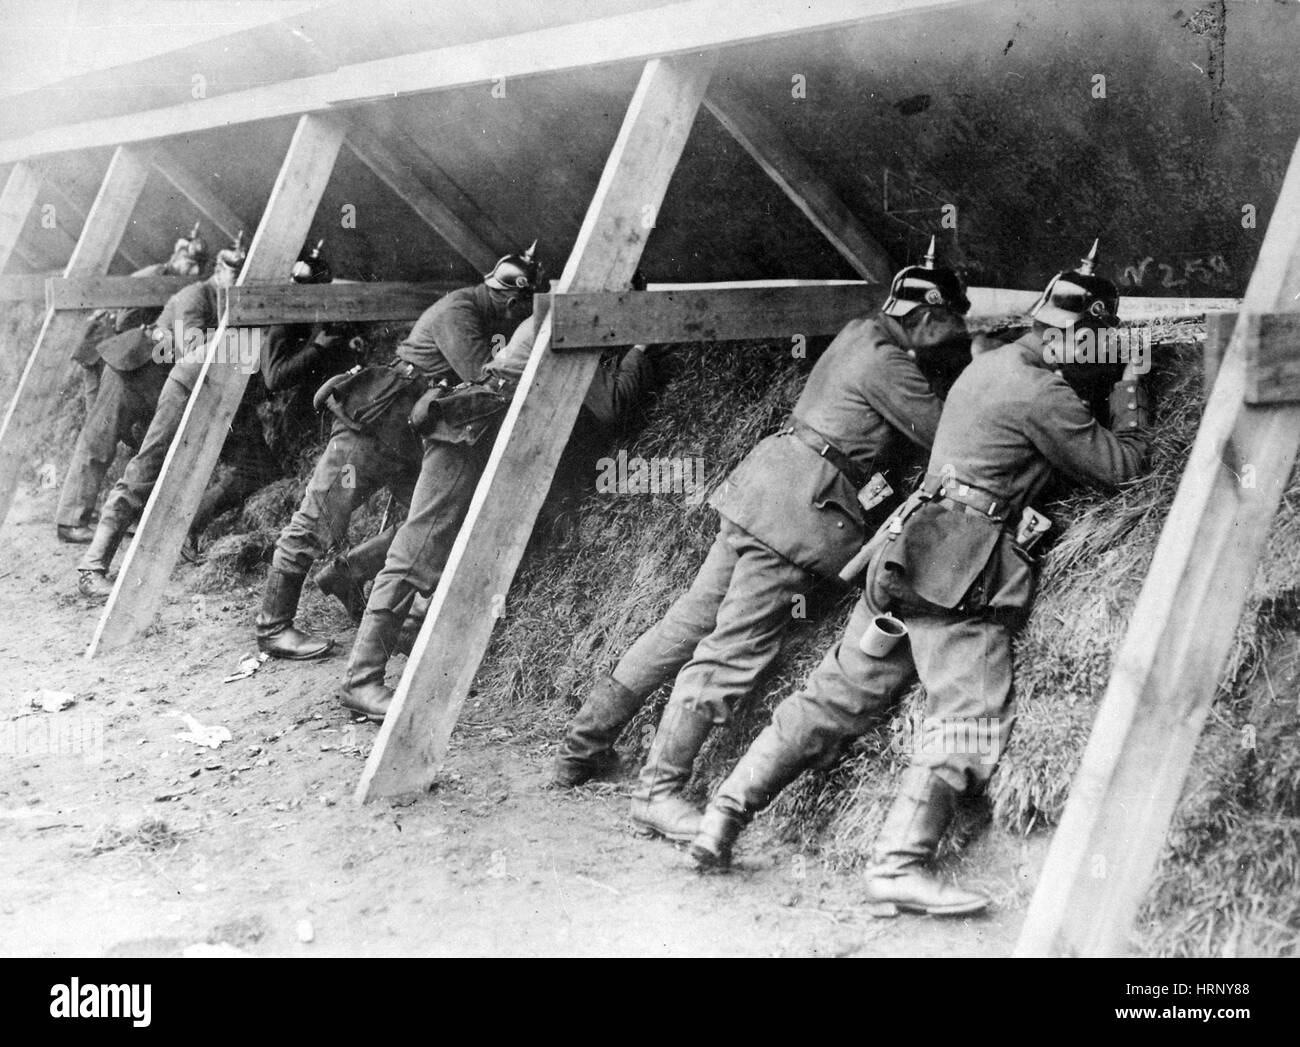 WWI, German Soldiers in Trench, Western Front - Stock Image